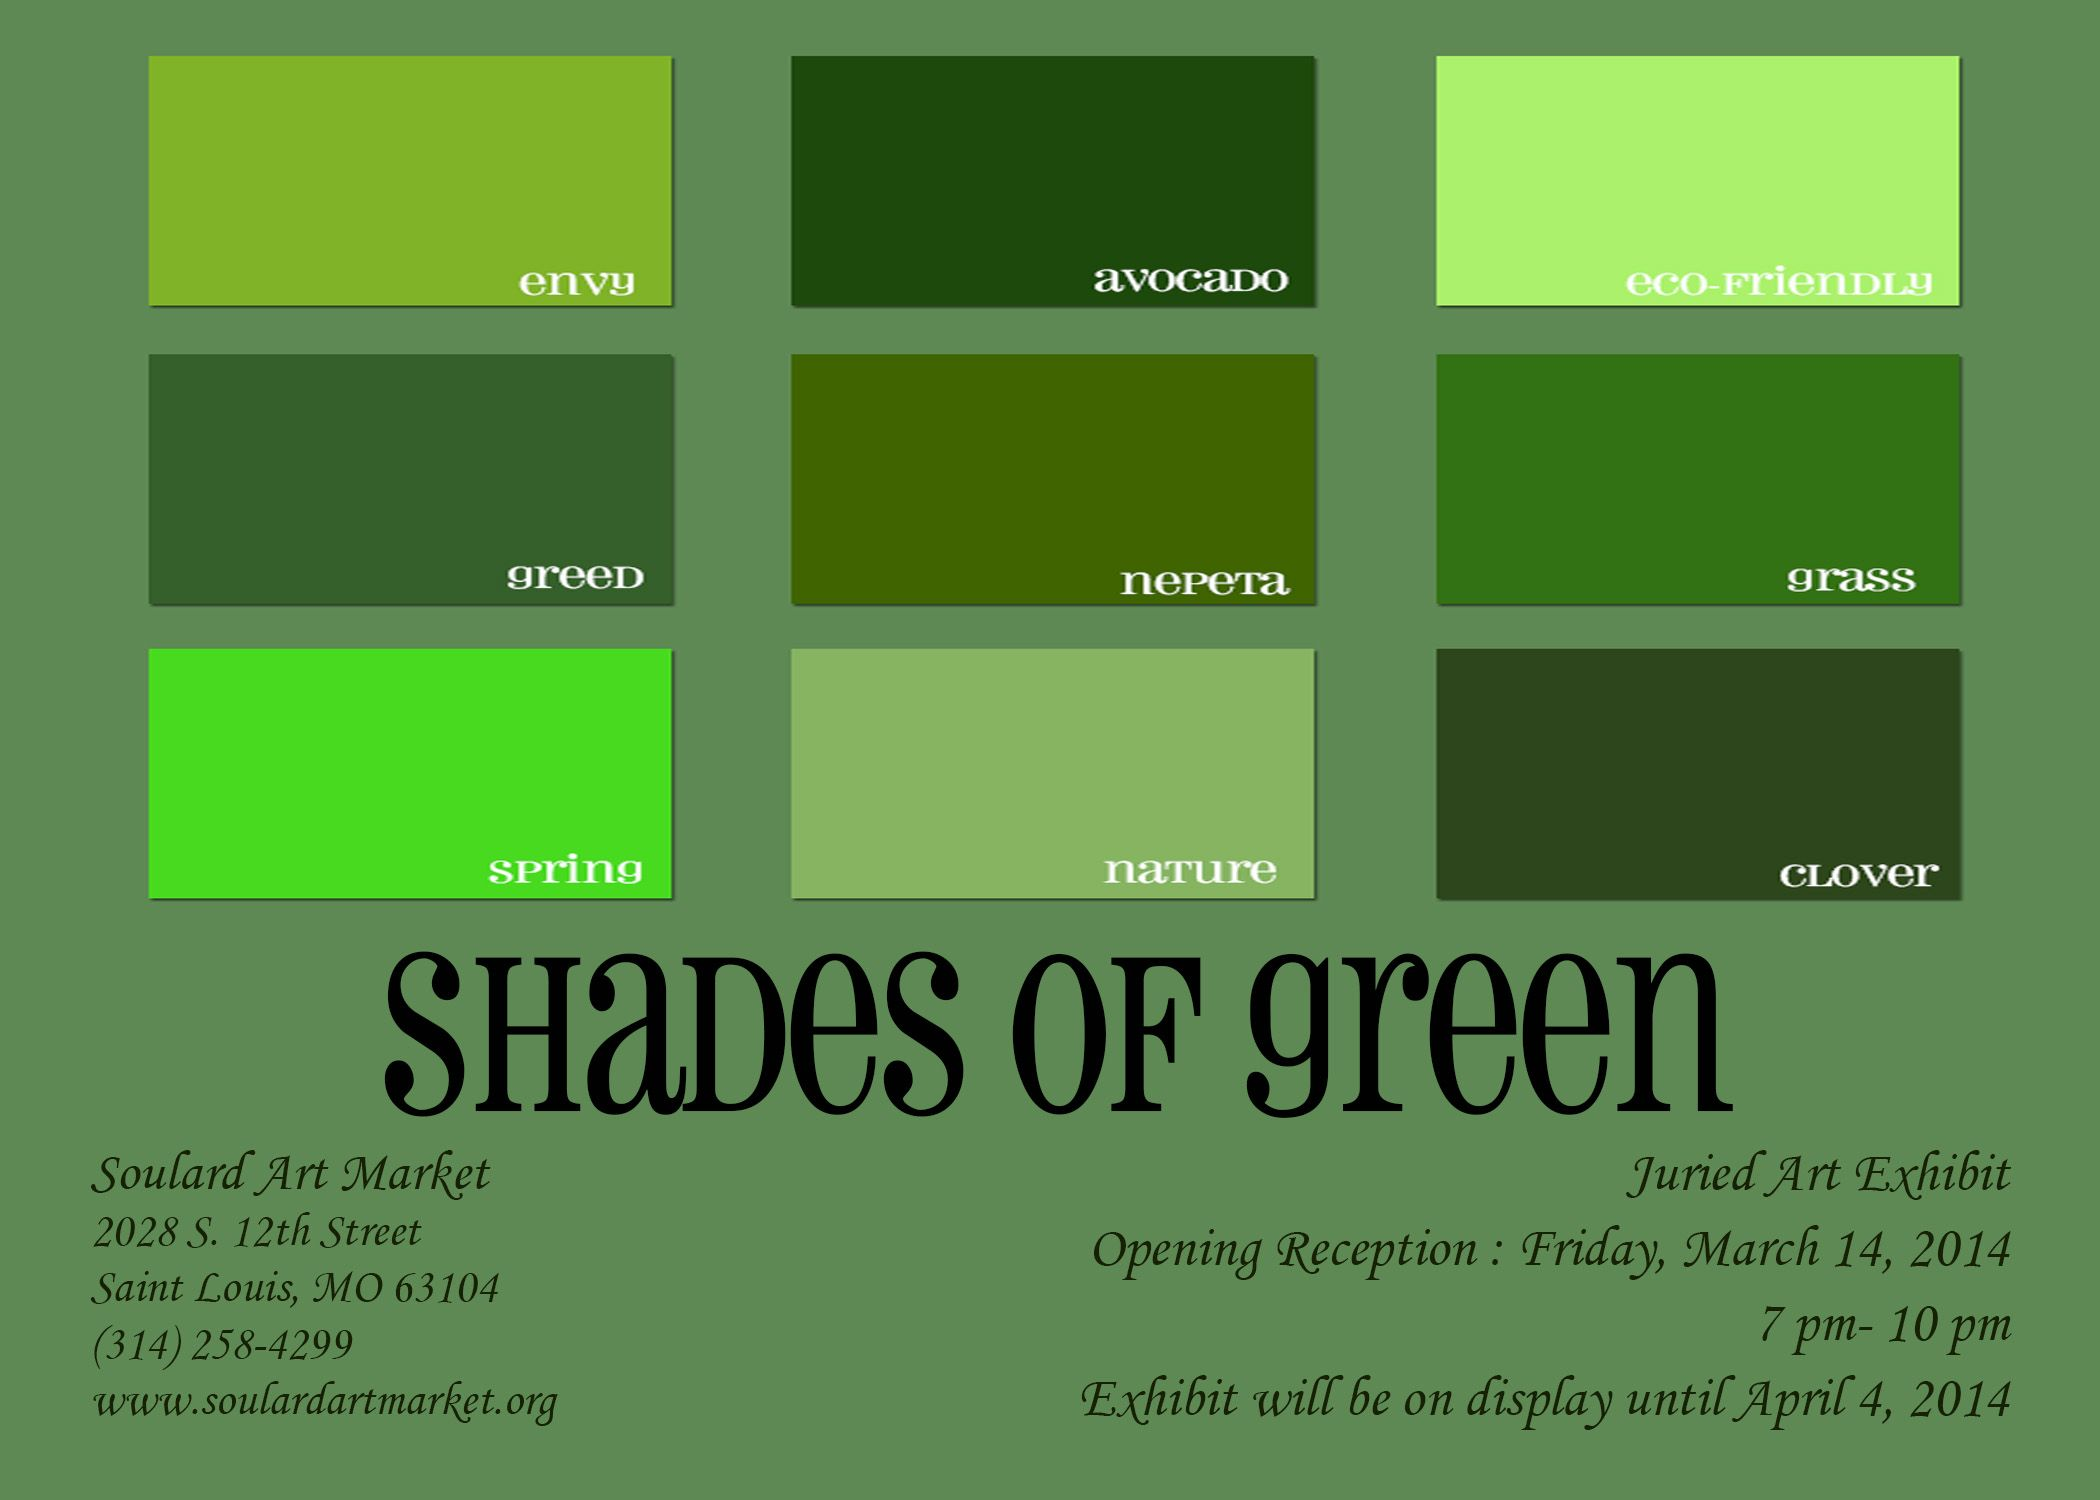 Shades of green | packaging | Pinterest | Mud rooms